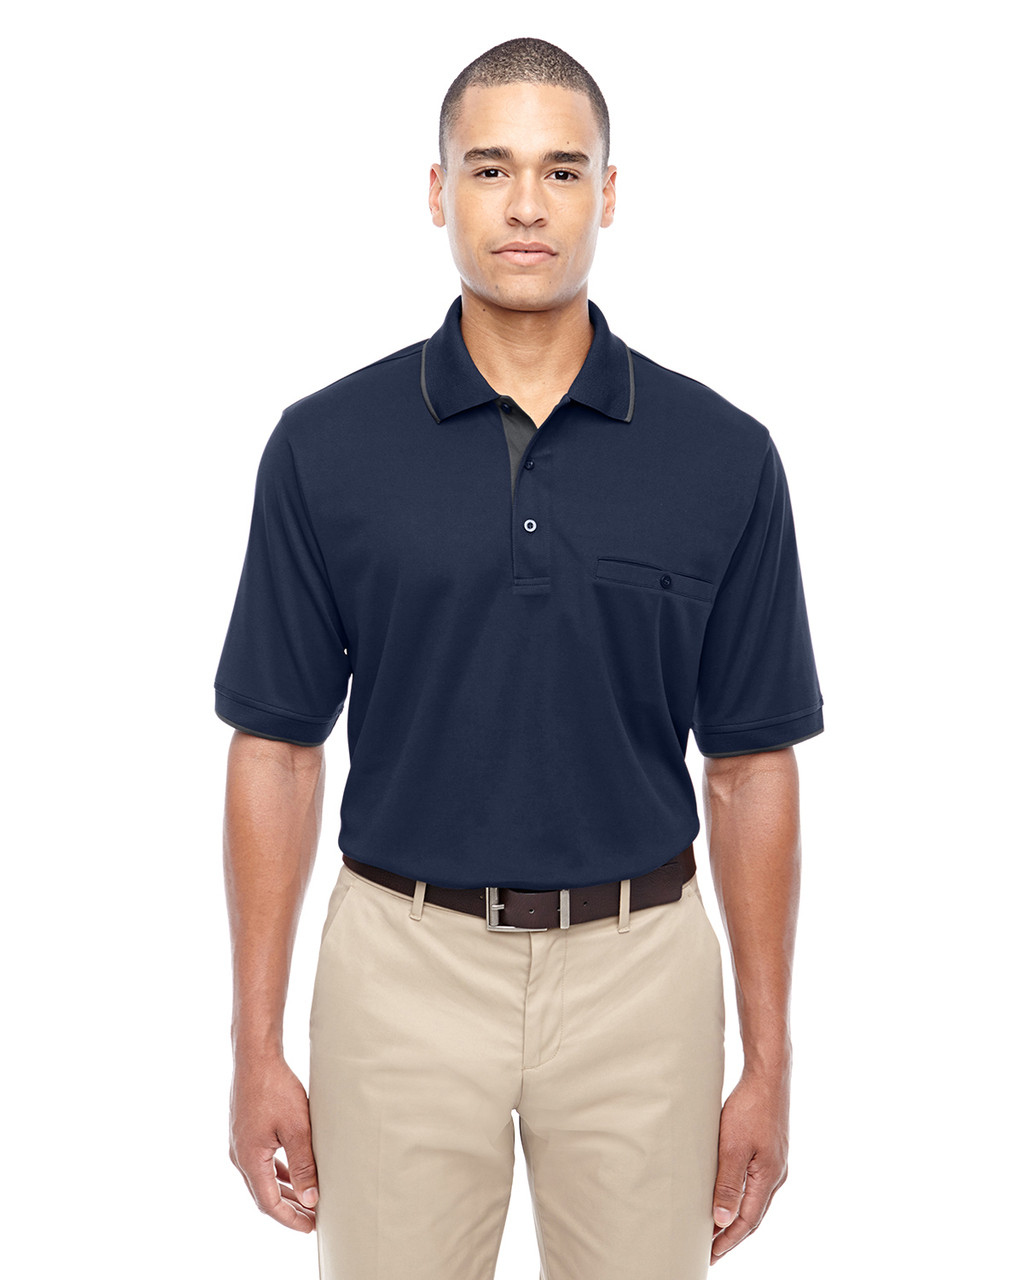 Classic Navy 88222 Ash City - Core 365 Men's Motive Performance Pique Polo Shirt with Tipped Collar   Blankclothing.ca